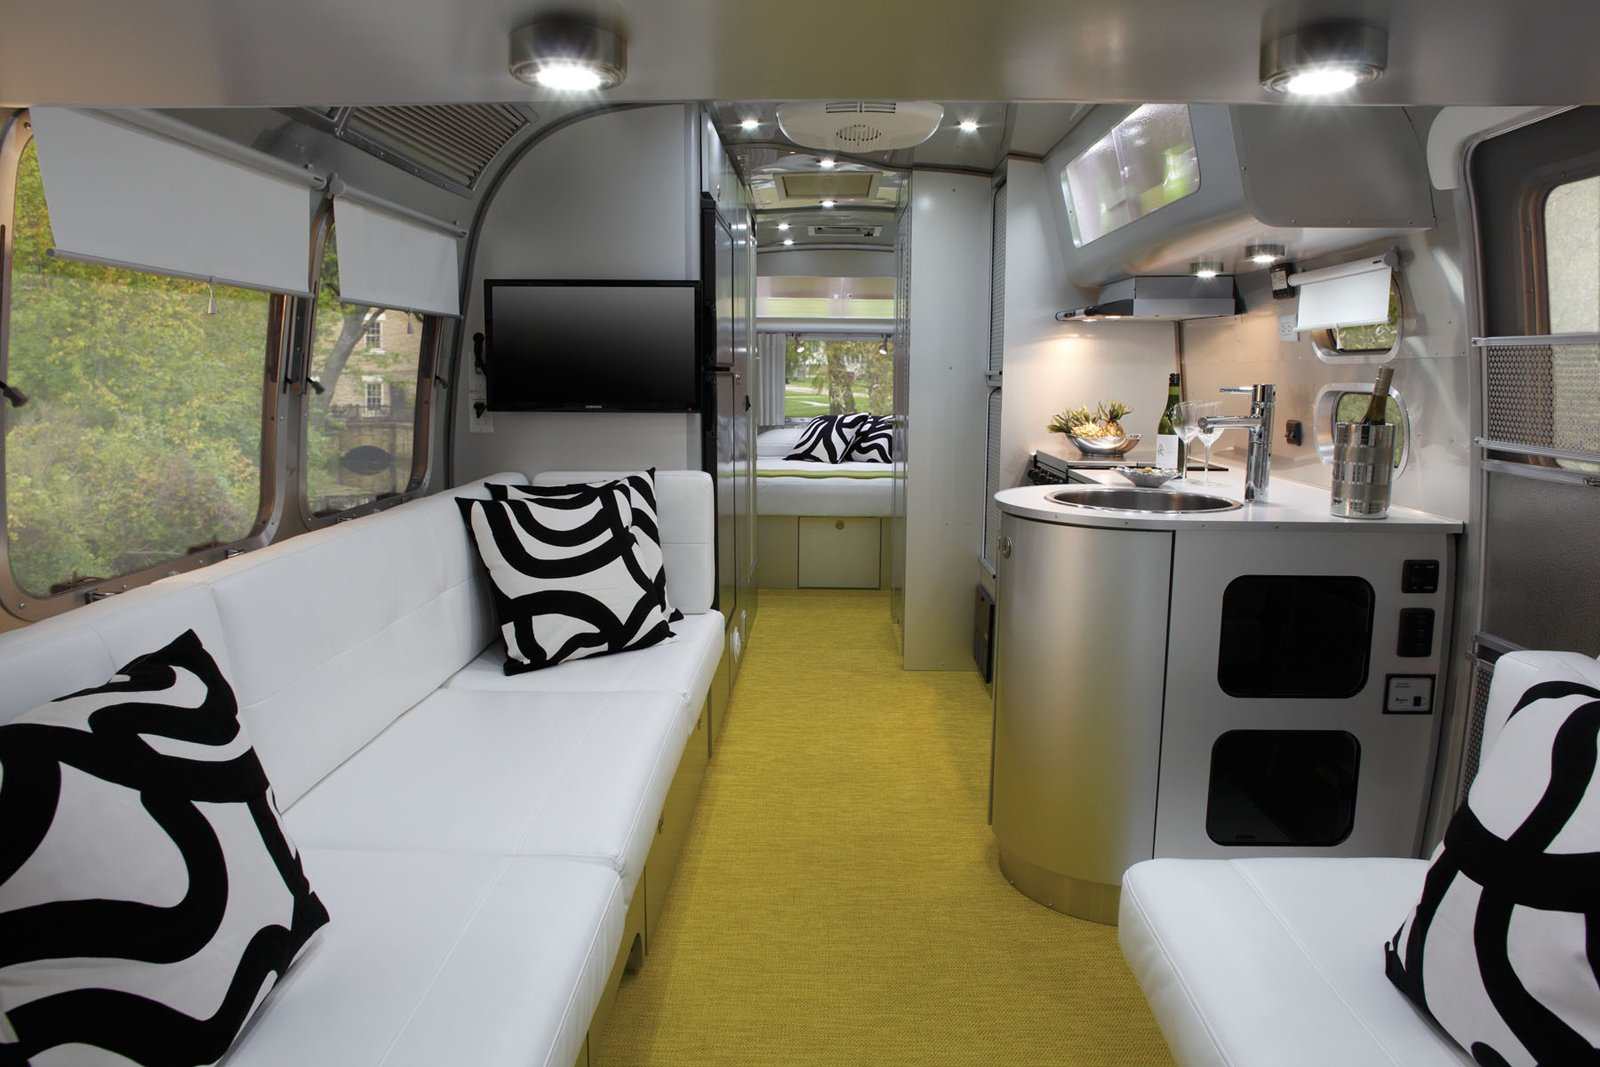 Living Room, Sofa, Carpet Floor, and Ceiling Lighting Architect Christopher C. Deam, Dwell founder Lara Deam's husband, designed Airstream's newest travel trailer, the International Sterling.  Photos from Airstreams We Love